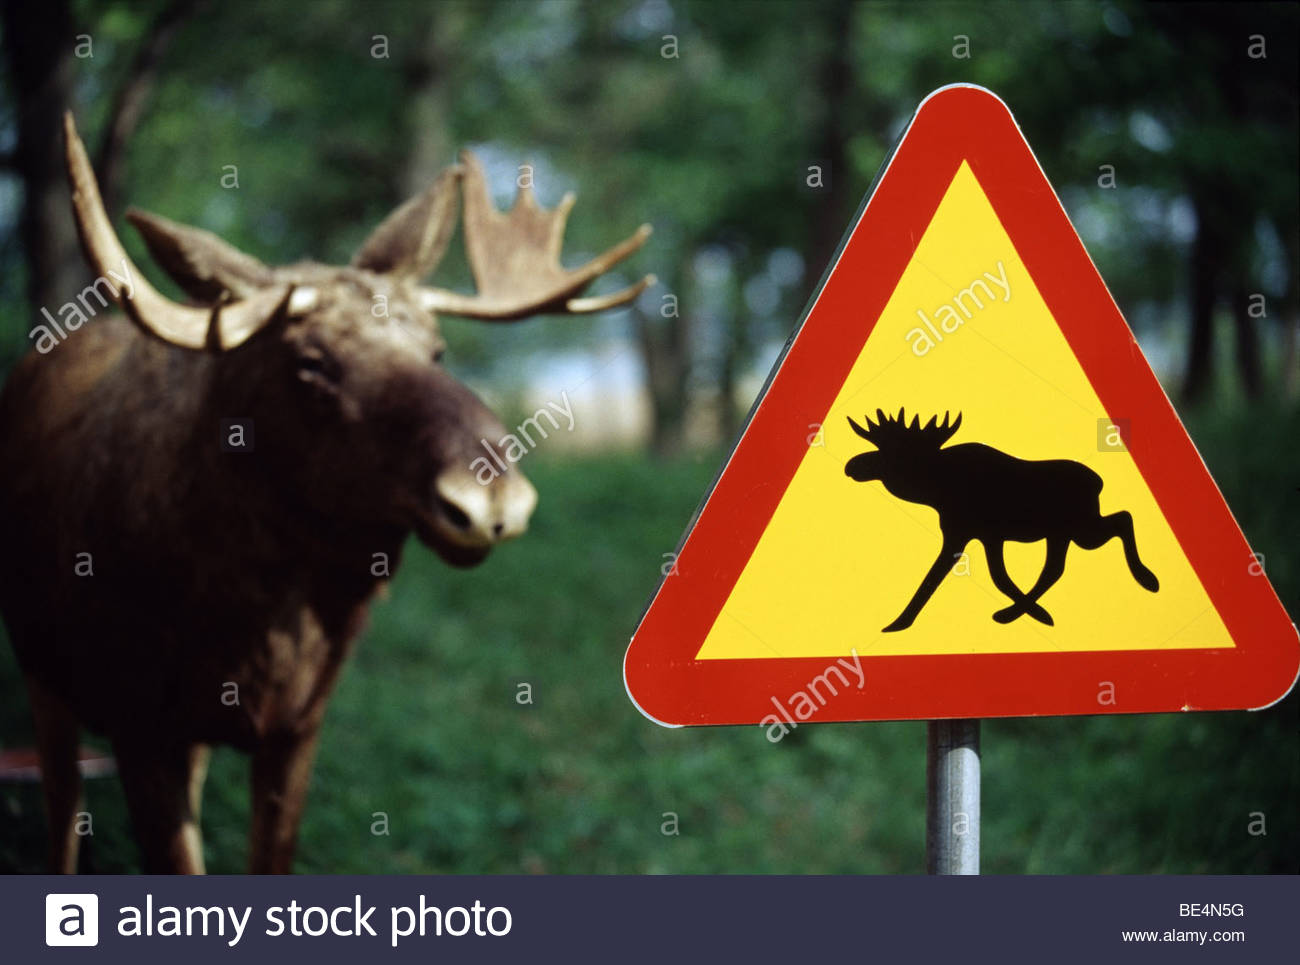 Close-up of a moose crossing sign with a moose in the background, Sweden Stock Photo